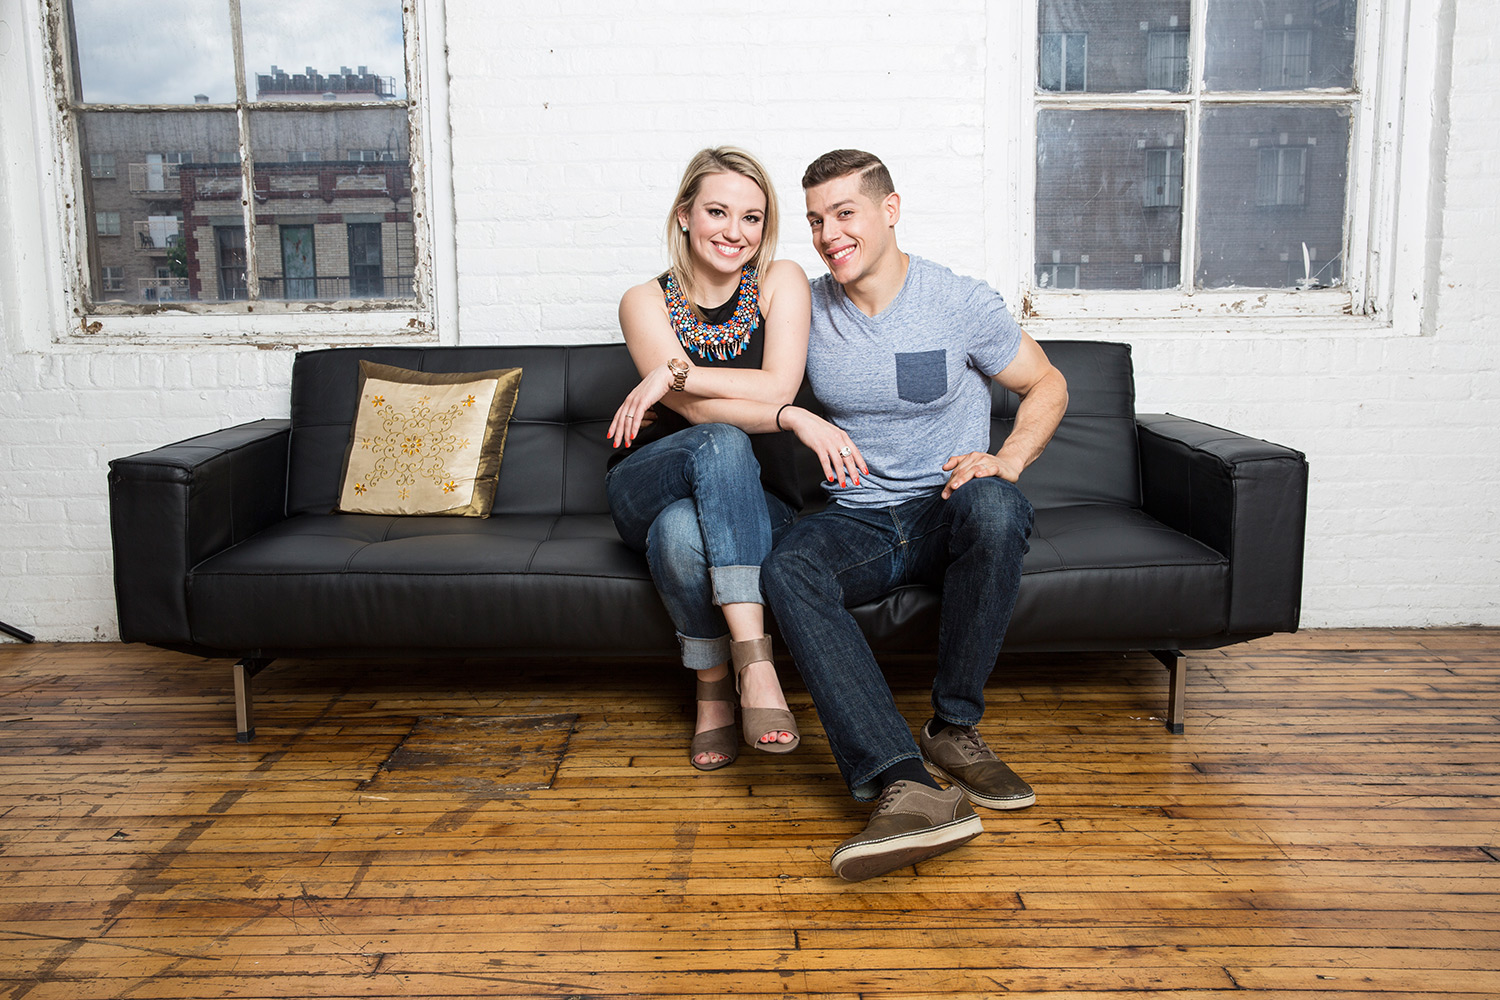 Married at First Sight's Jason Carrion and Cortney Hendrix